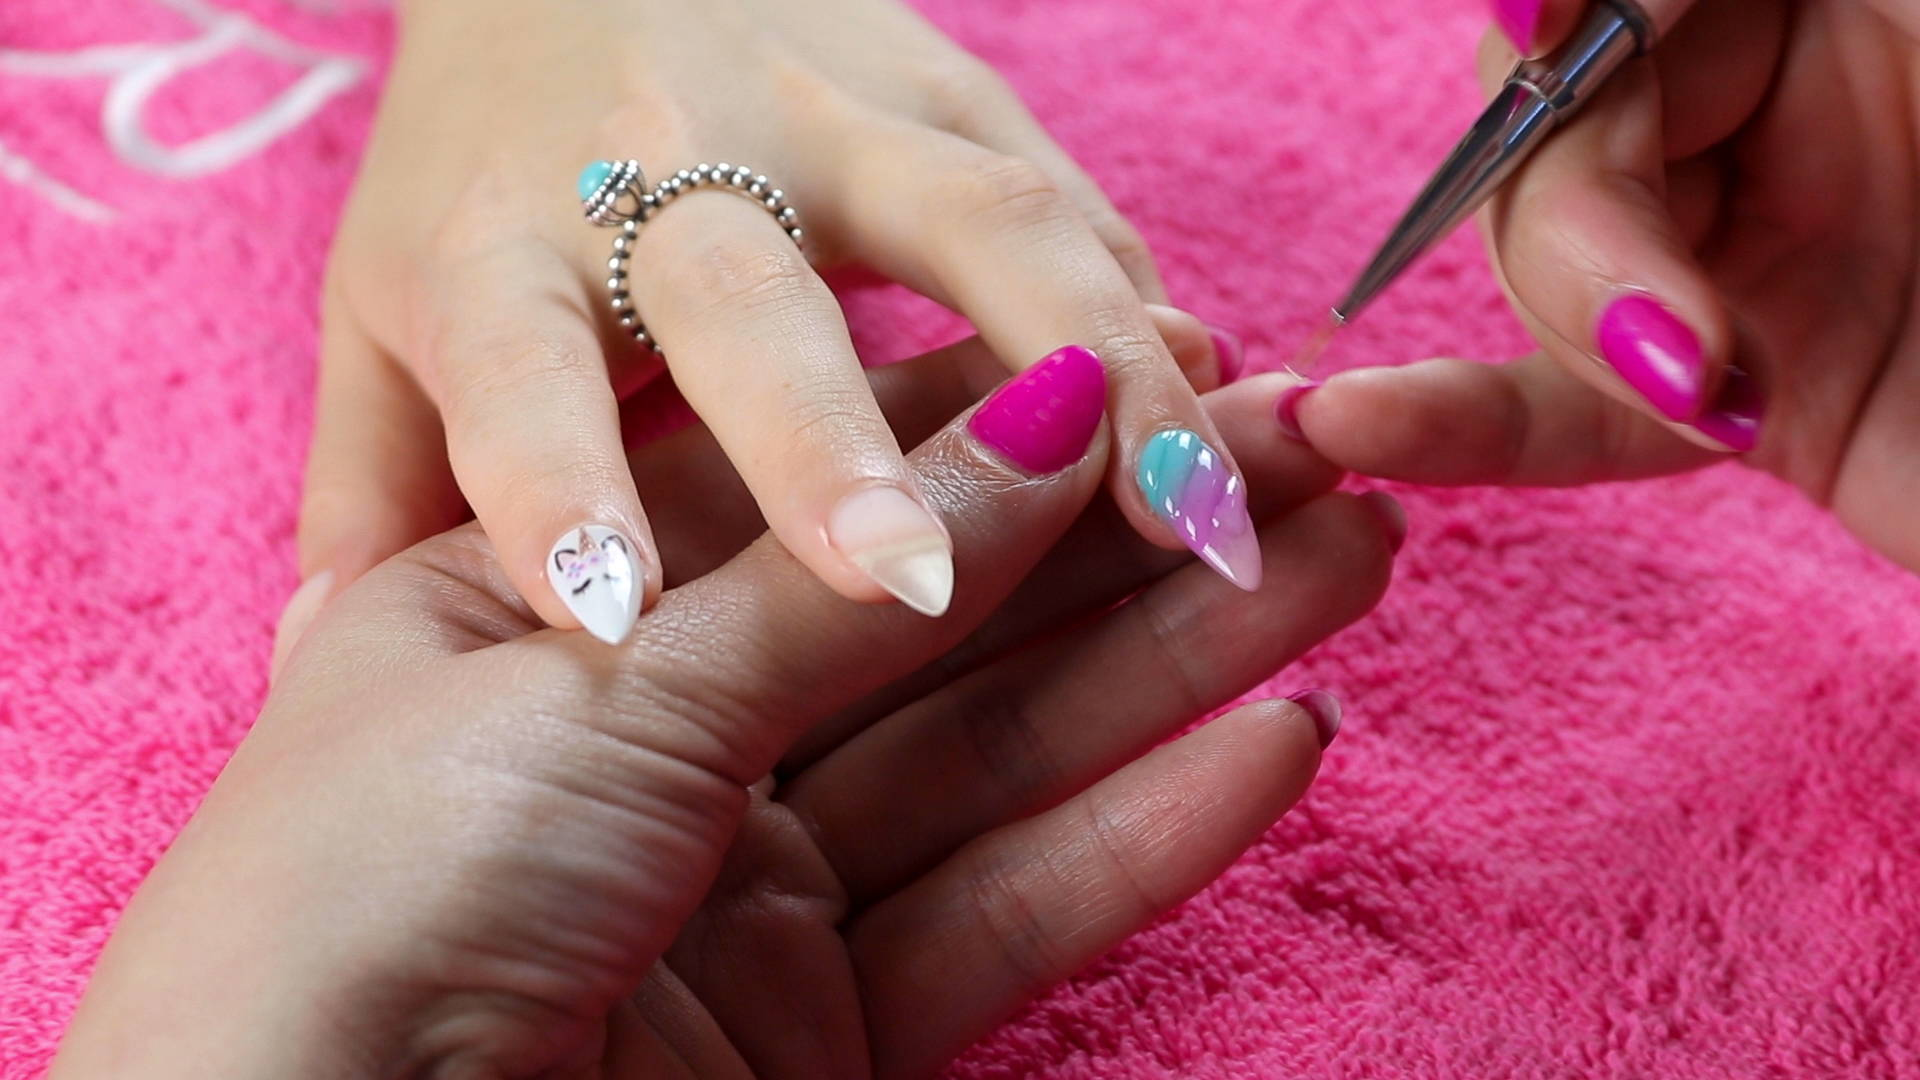 3D Unicorn nail art detailing being added to a nail using ORLY GelFX Builder In A Bottle